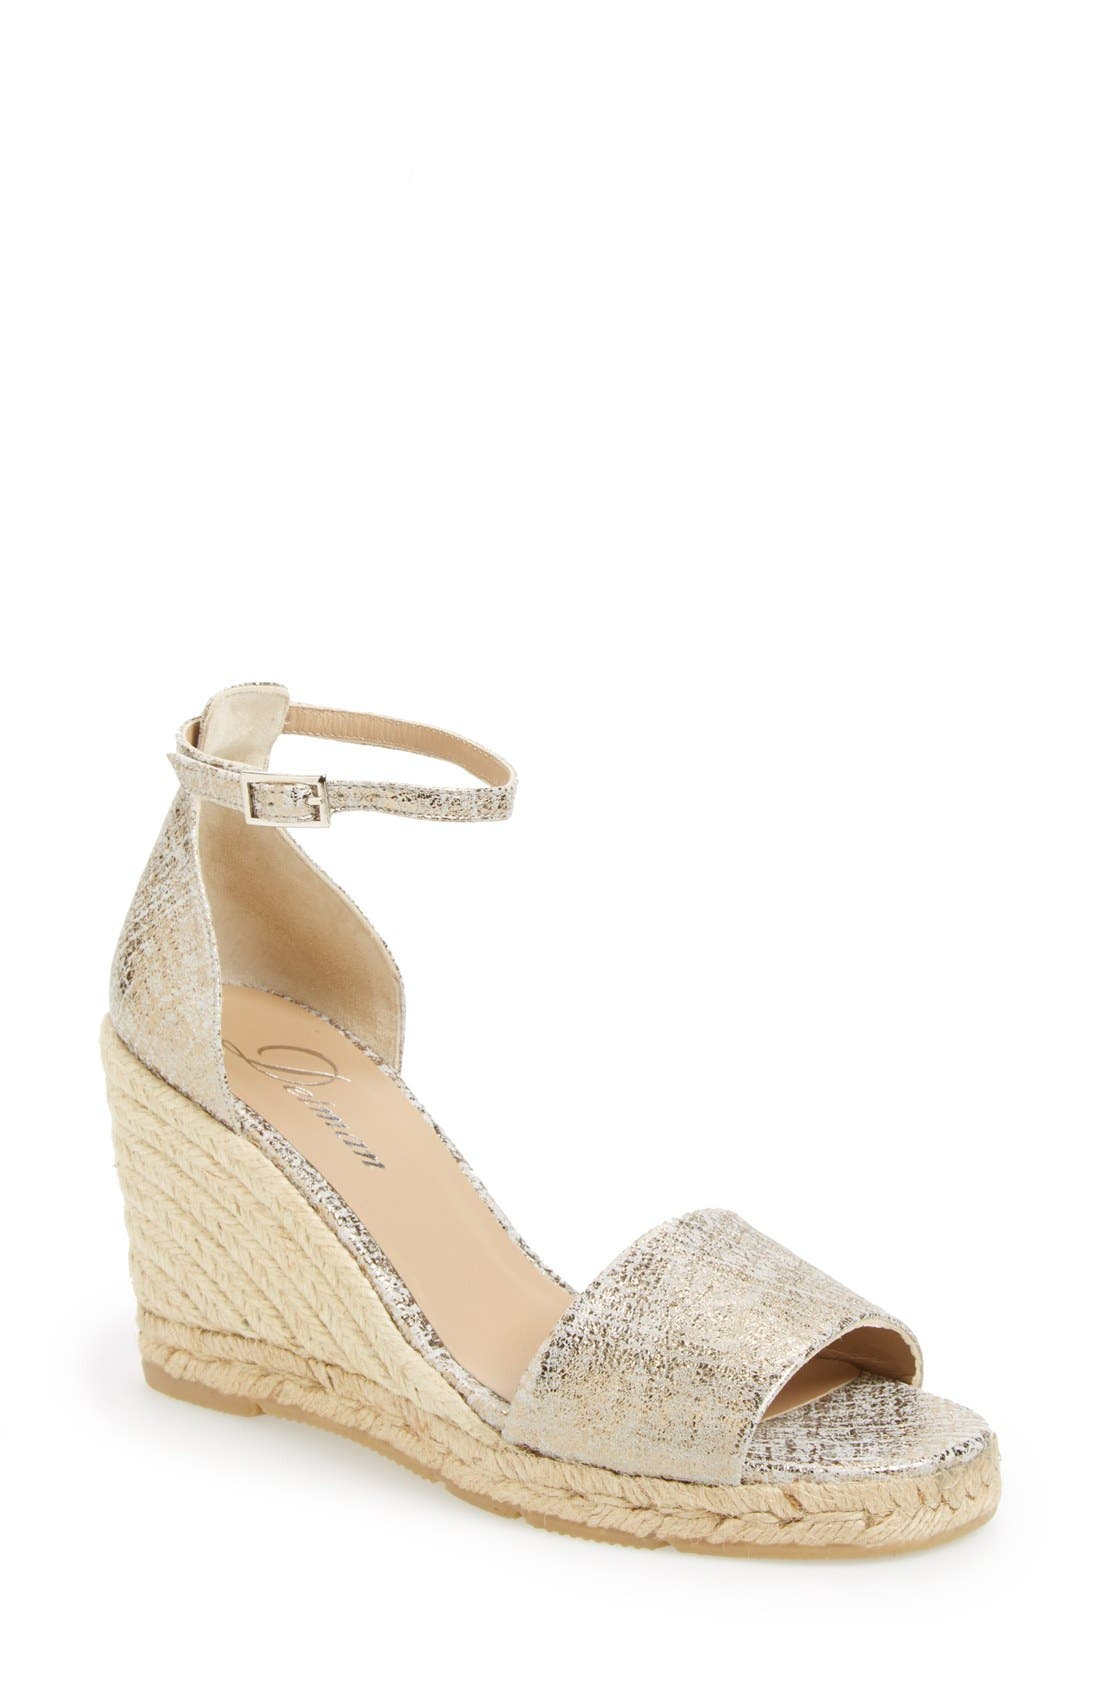 Alternate Image 1 Selected - Delman 'Tira' Ankle Strap Espadrille Wedge (Women)